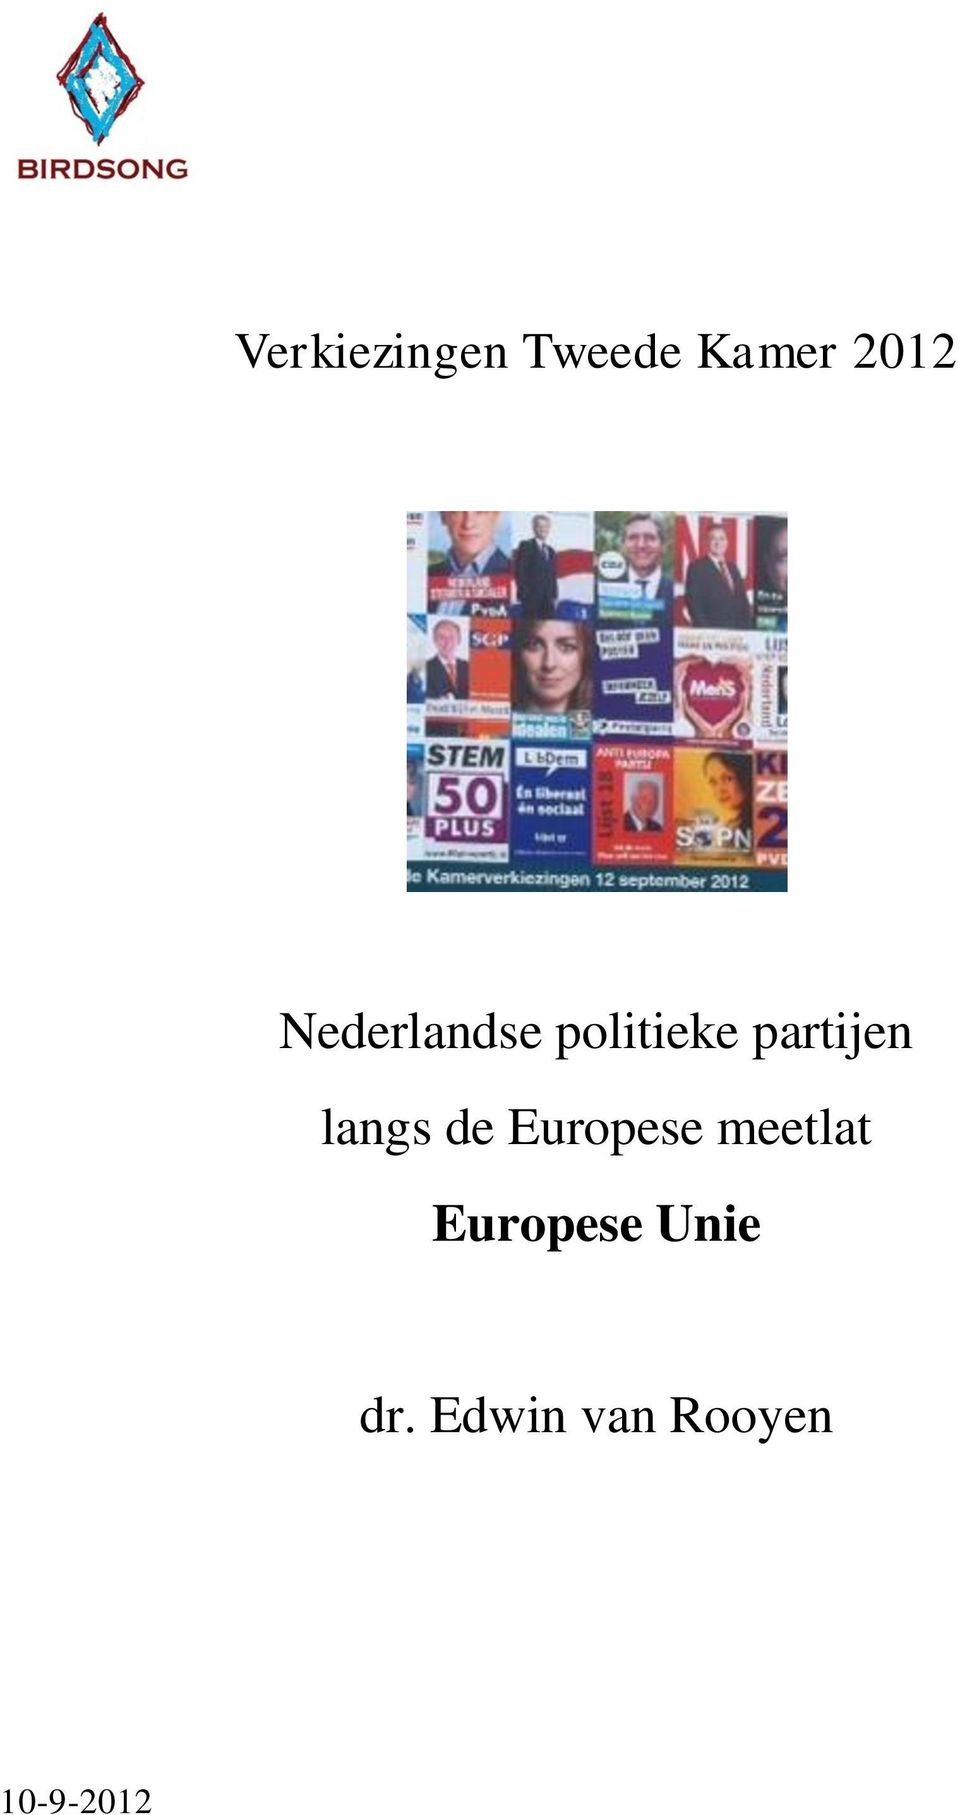 langs de Europese meetlat